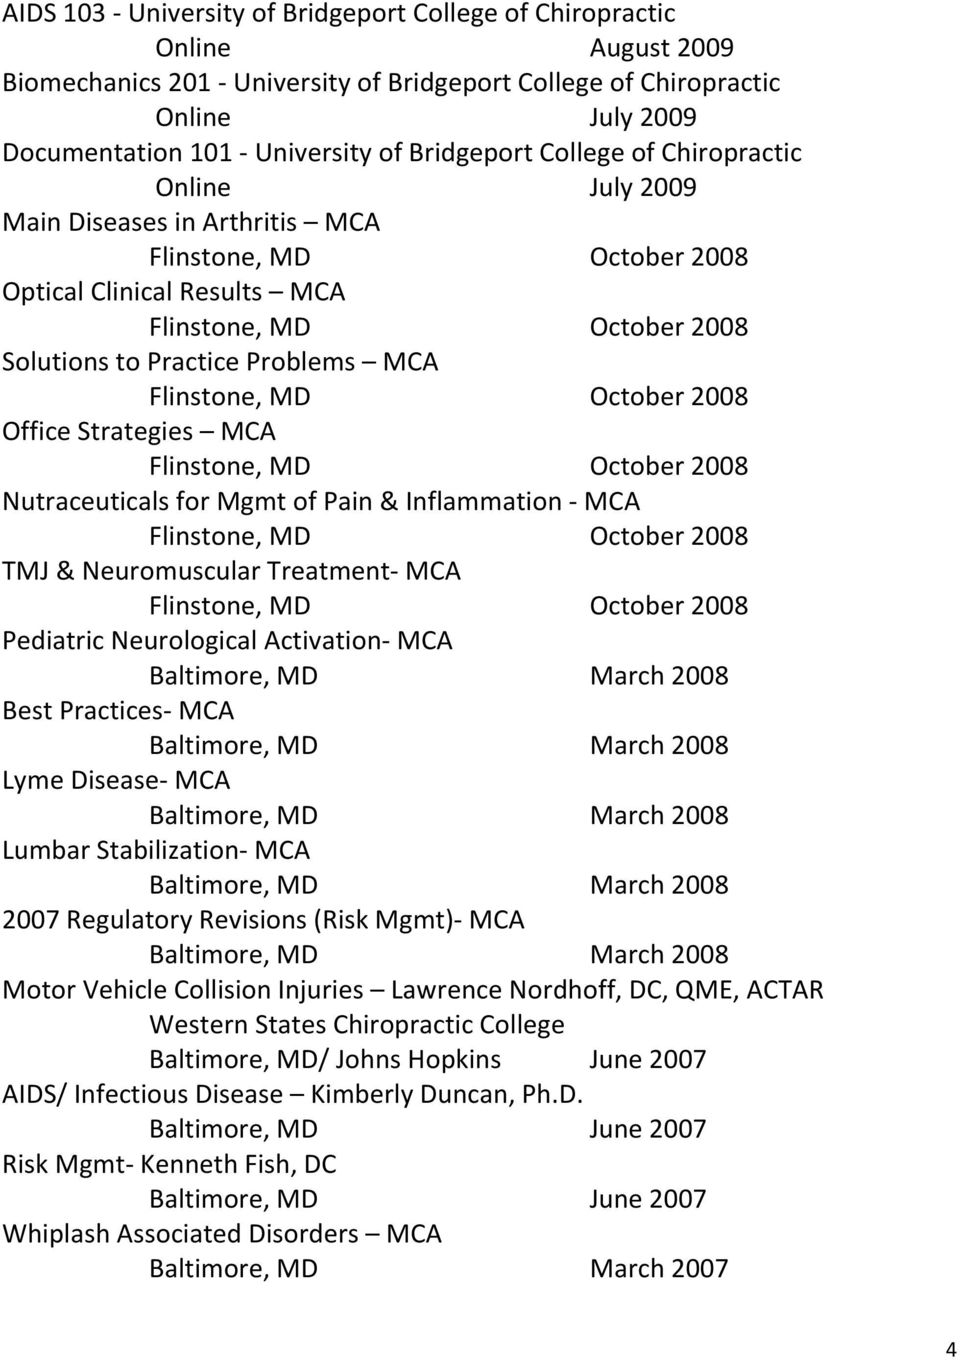 Disease- MCA Lumbar Stabilization- MCA 2007 Regulatory Revisions (Risk Mgmt)- MCA Motor Vehicle Collision Injuries Lawrence Nordhoff, DC, QME, ACTAR Western States Chiropractic College